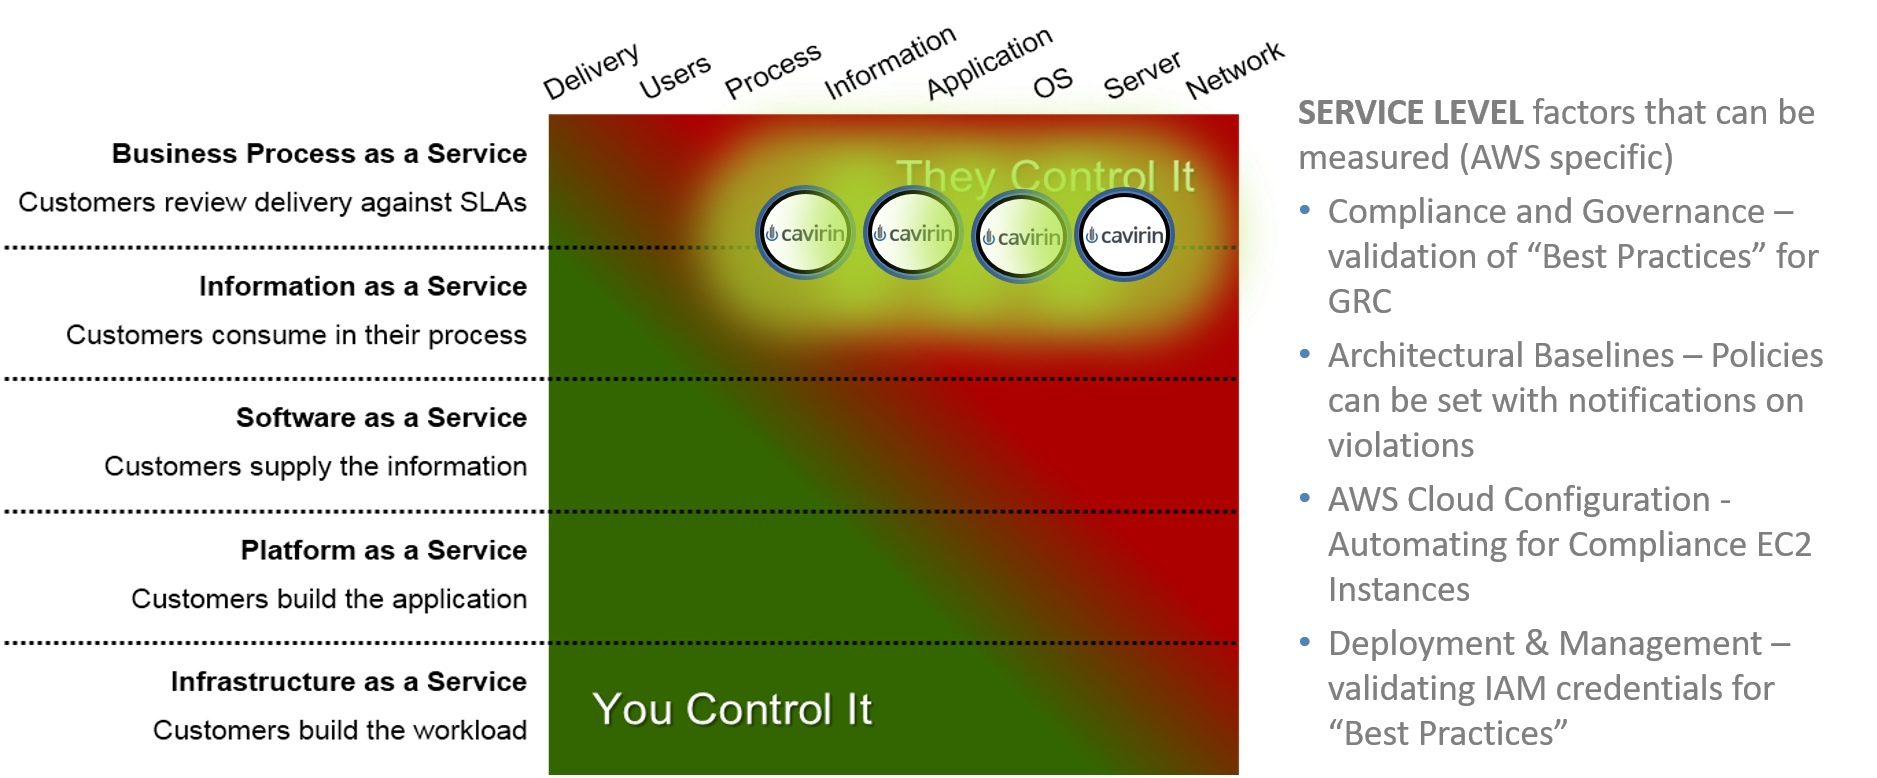 Service Level factors controlled via Cavirin